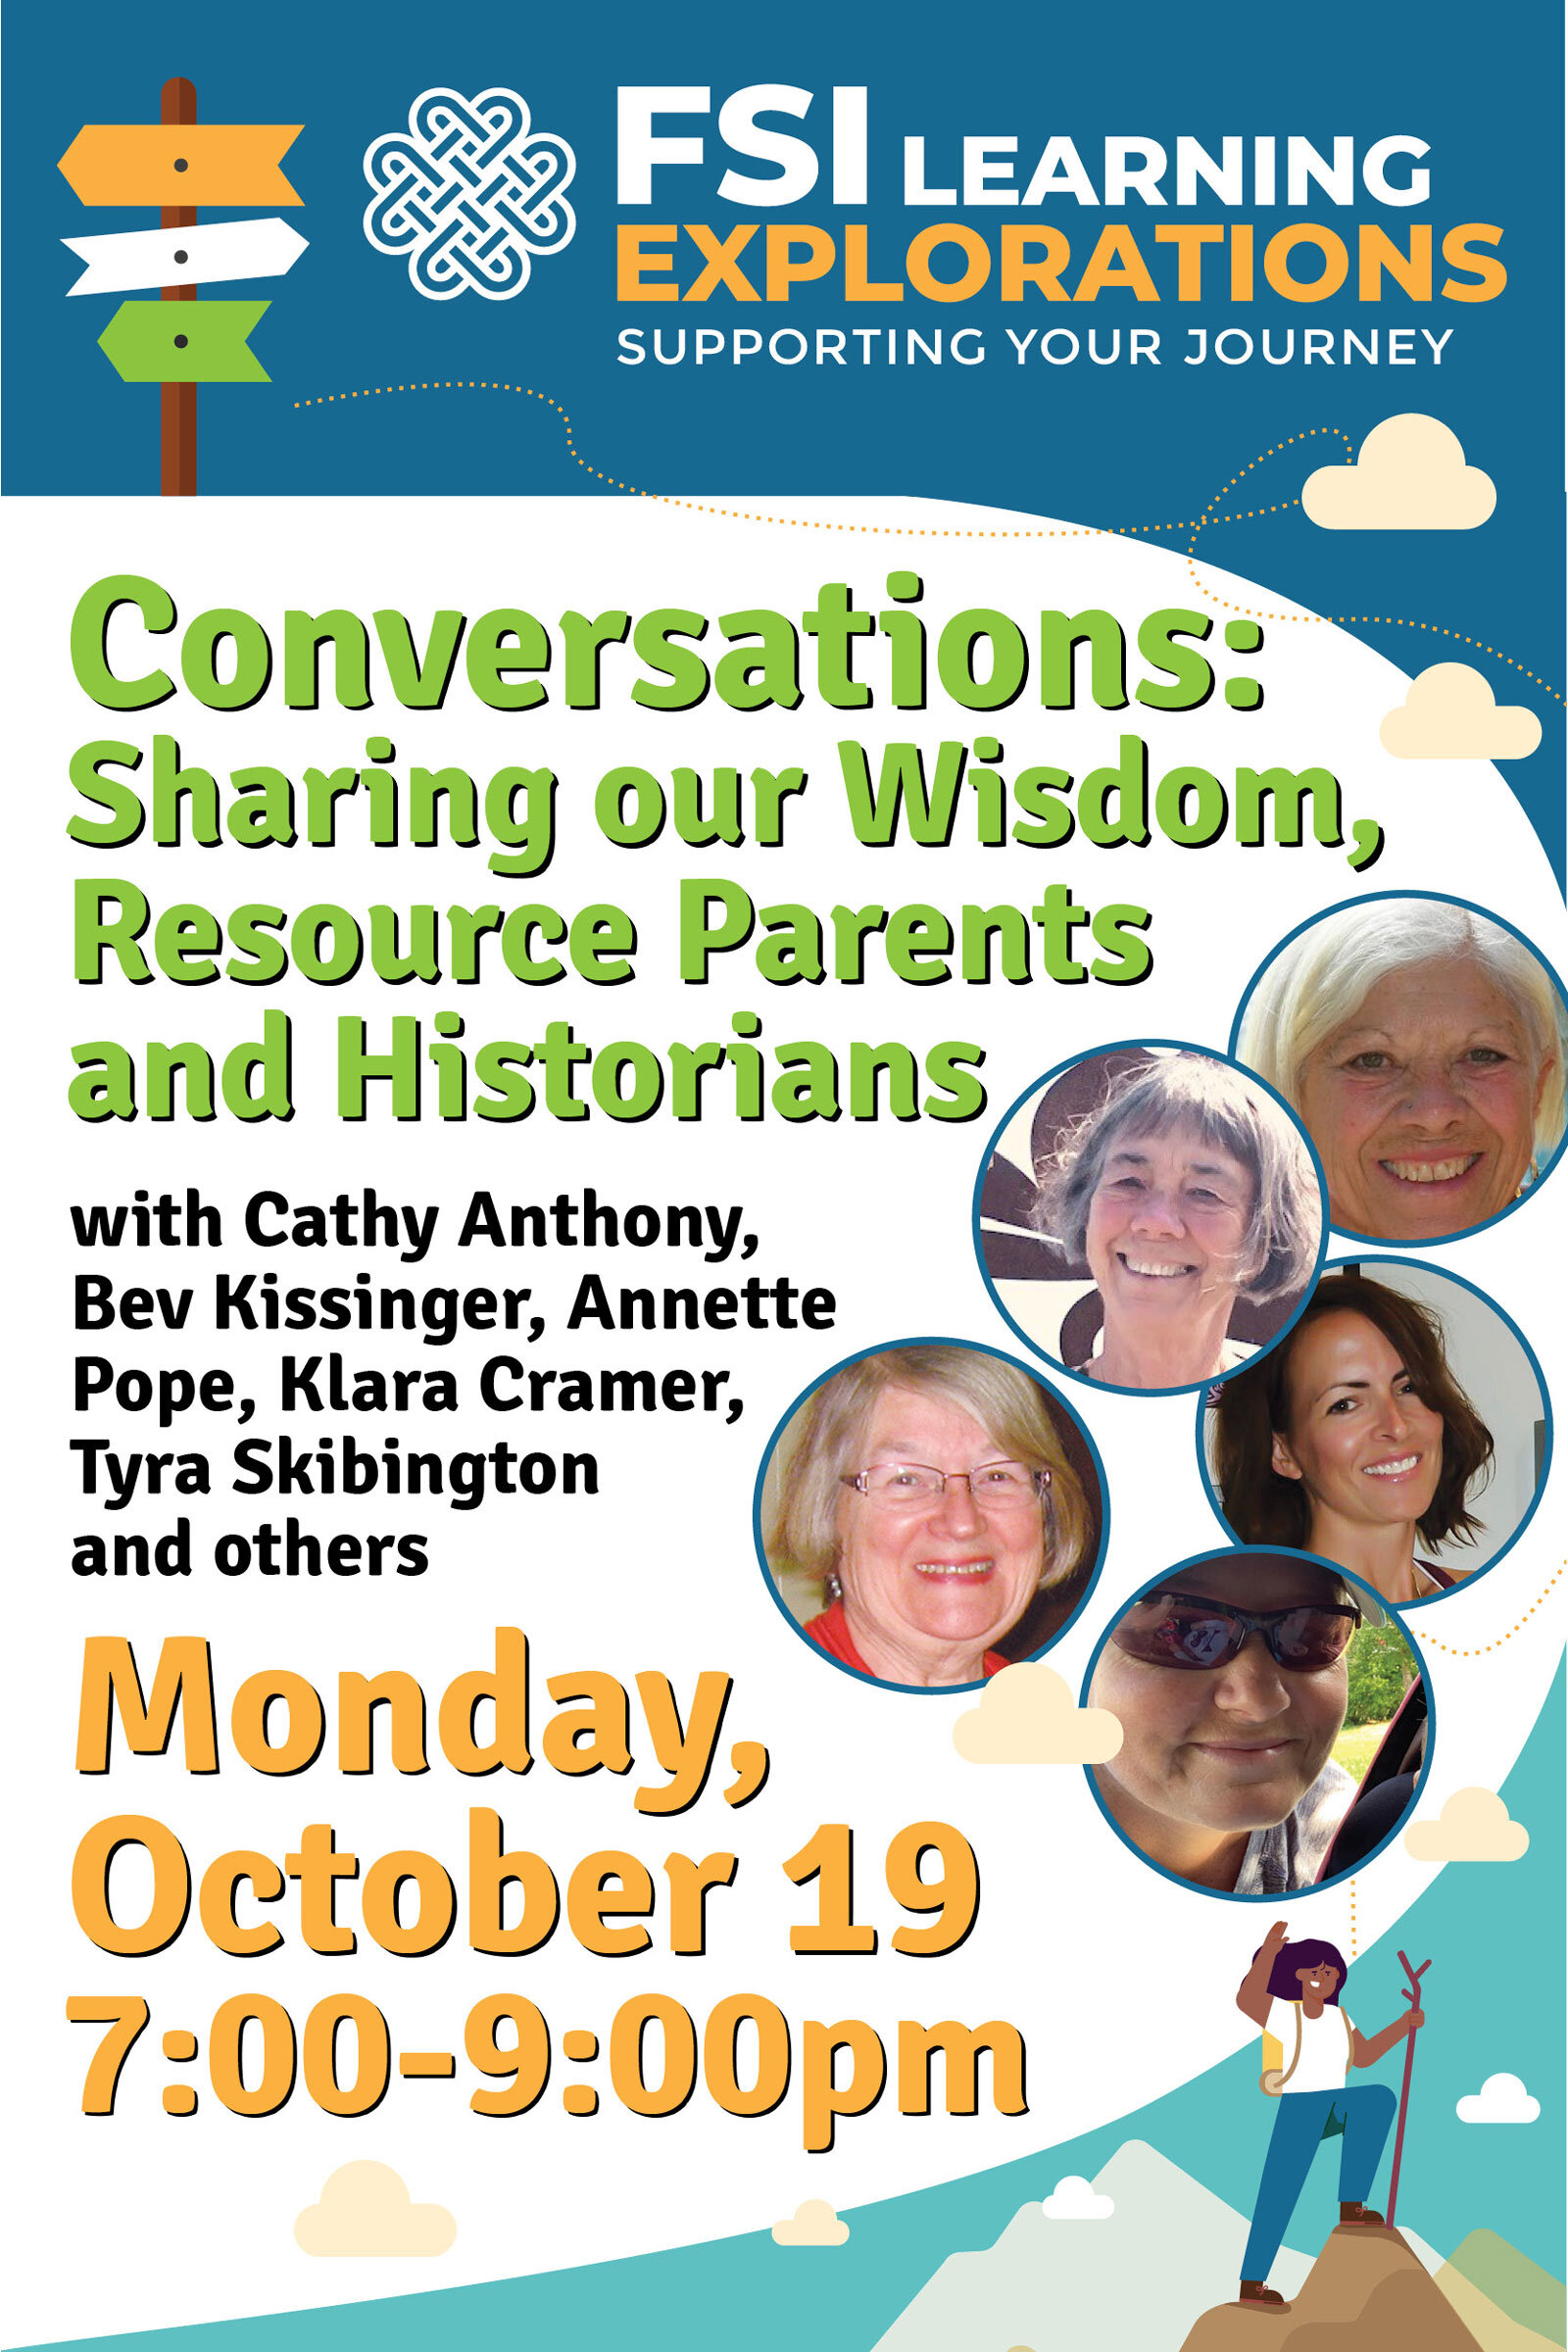 FSI Learning Explorations - Conversations: Sharing our Wisdom, Resource Parents and Historians